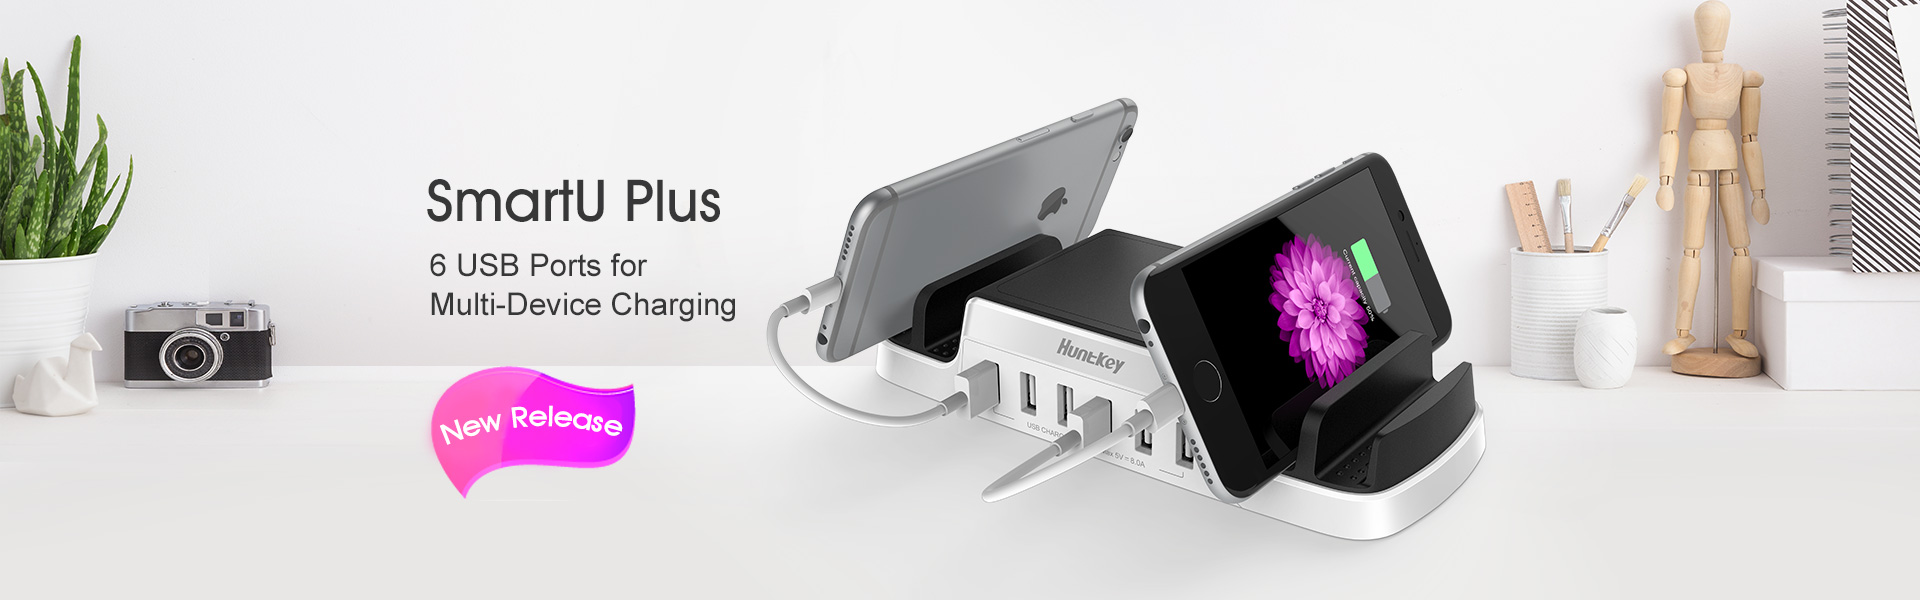 6 USB Ports for Multi-Device Charging